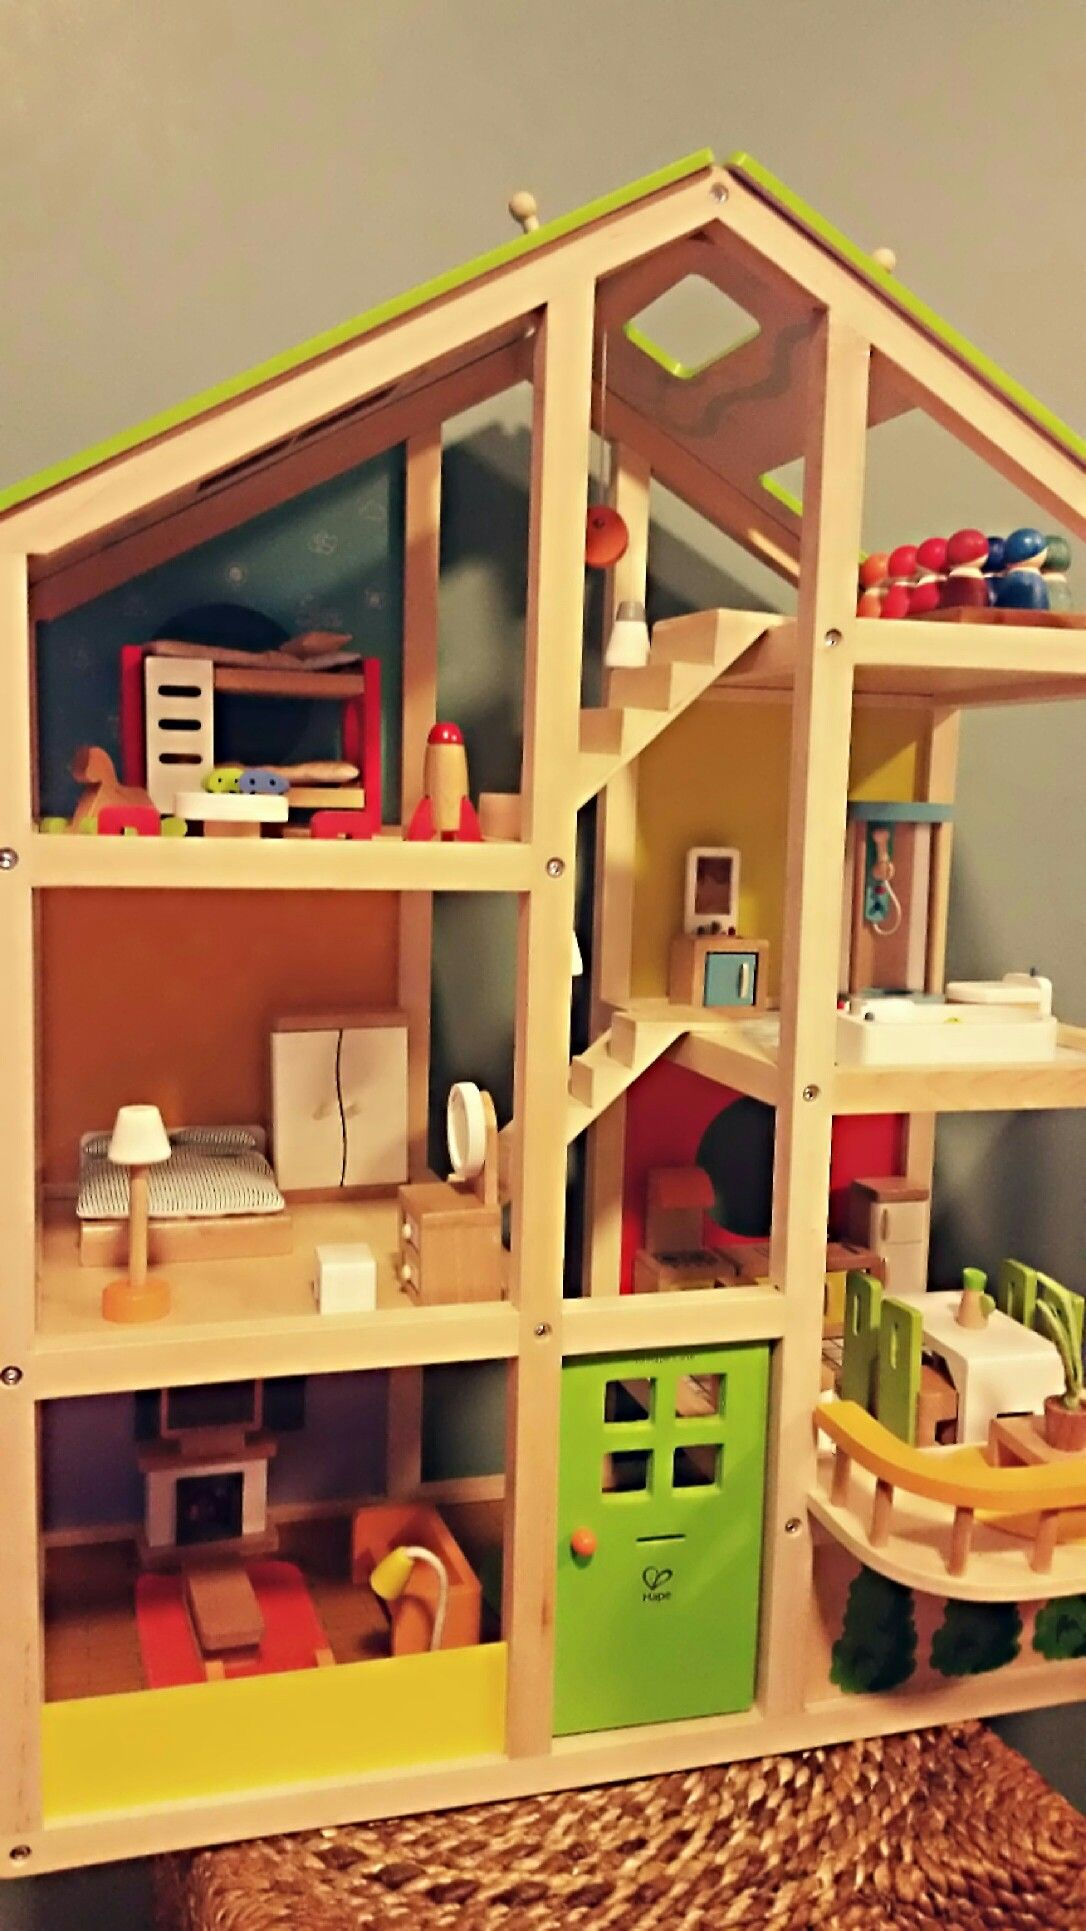 """""""Hape"""" play therapy dollhouse: using wooden gender neutral dolls"""